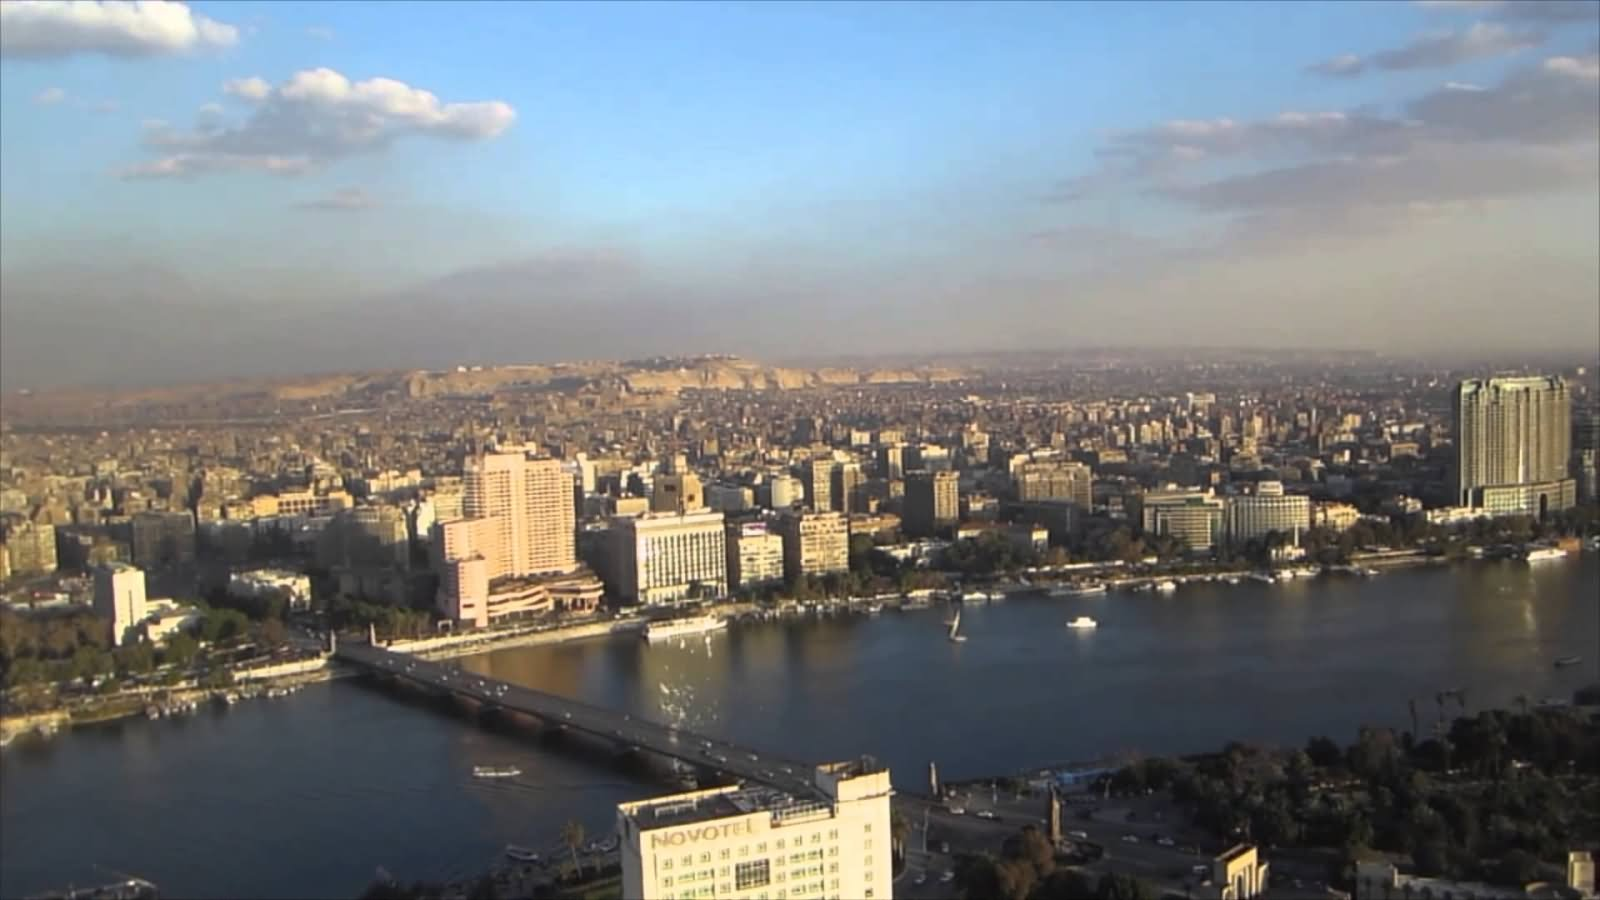 View Of The Cairo City From The Cairo Tower